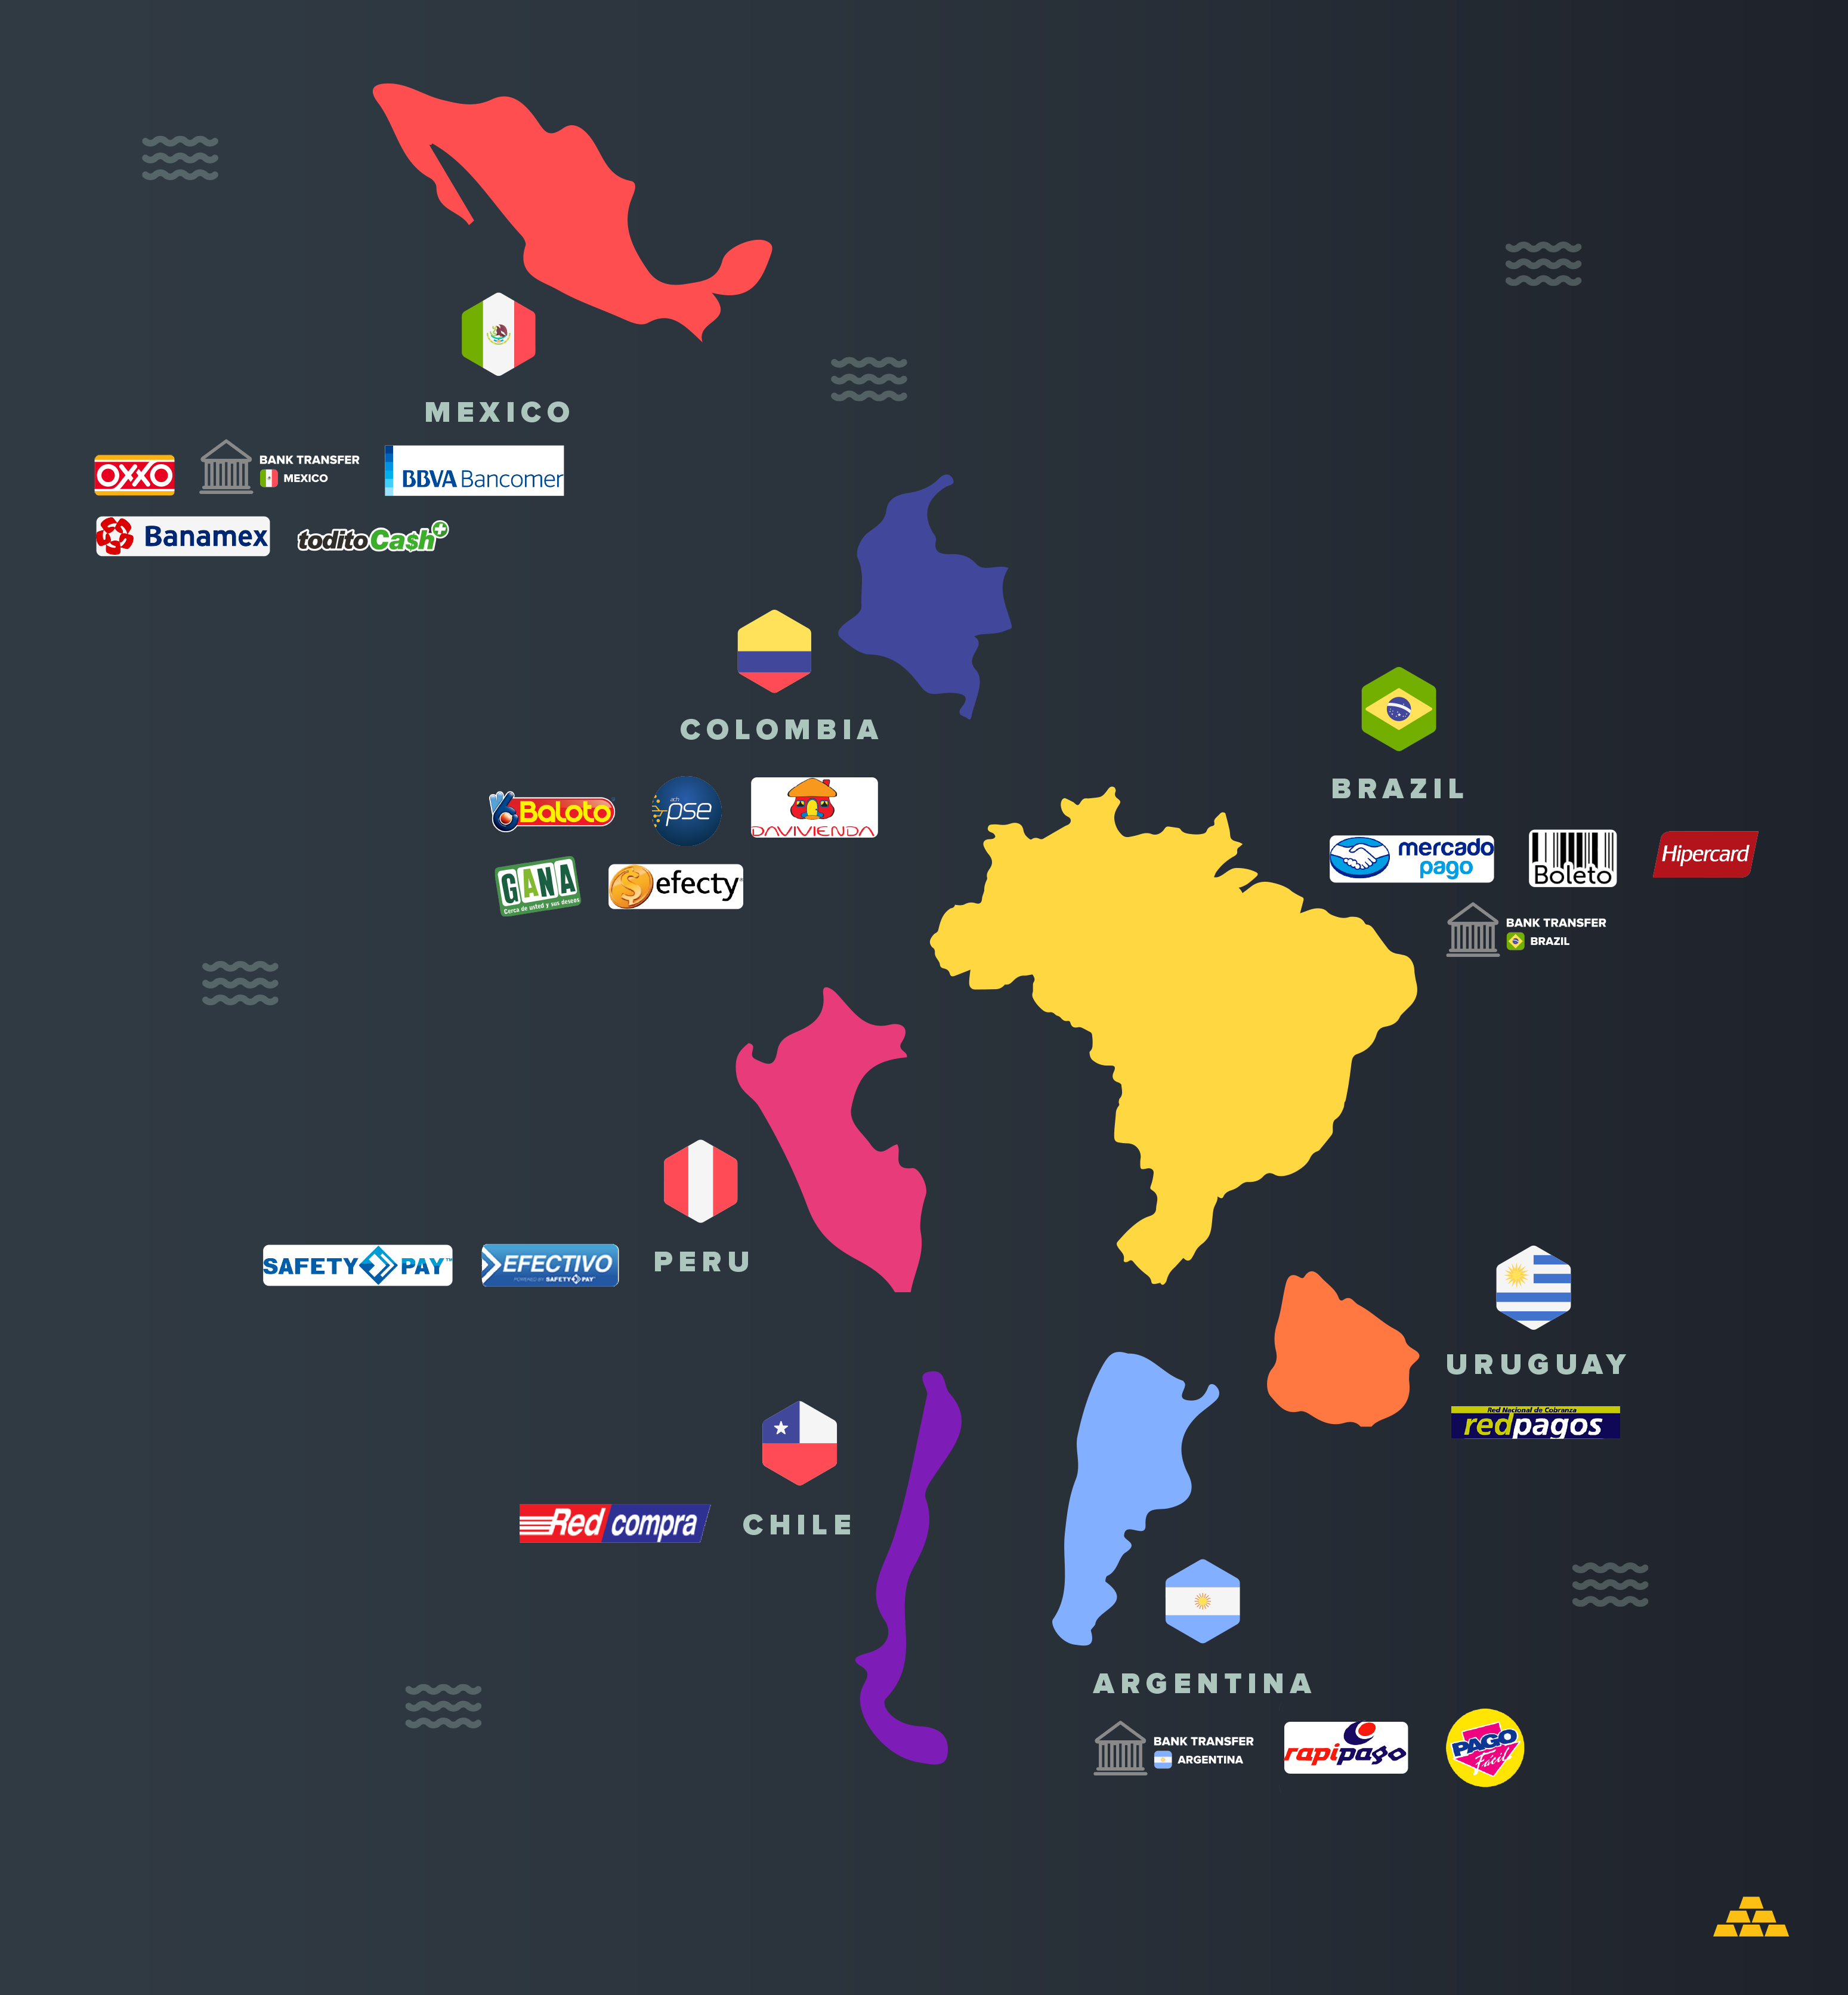 Payment methods in Latin America